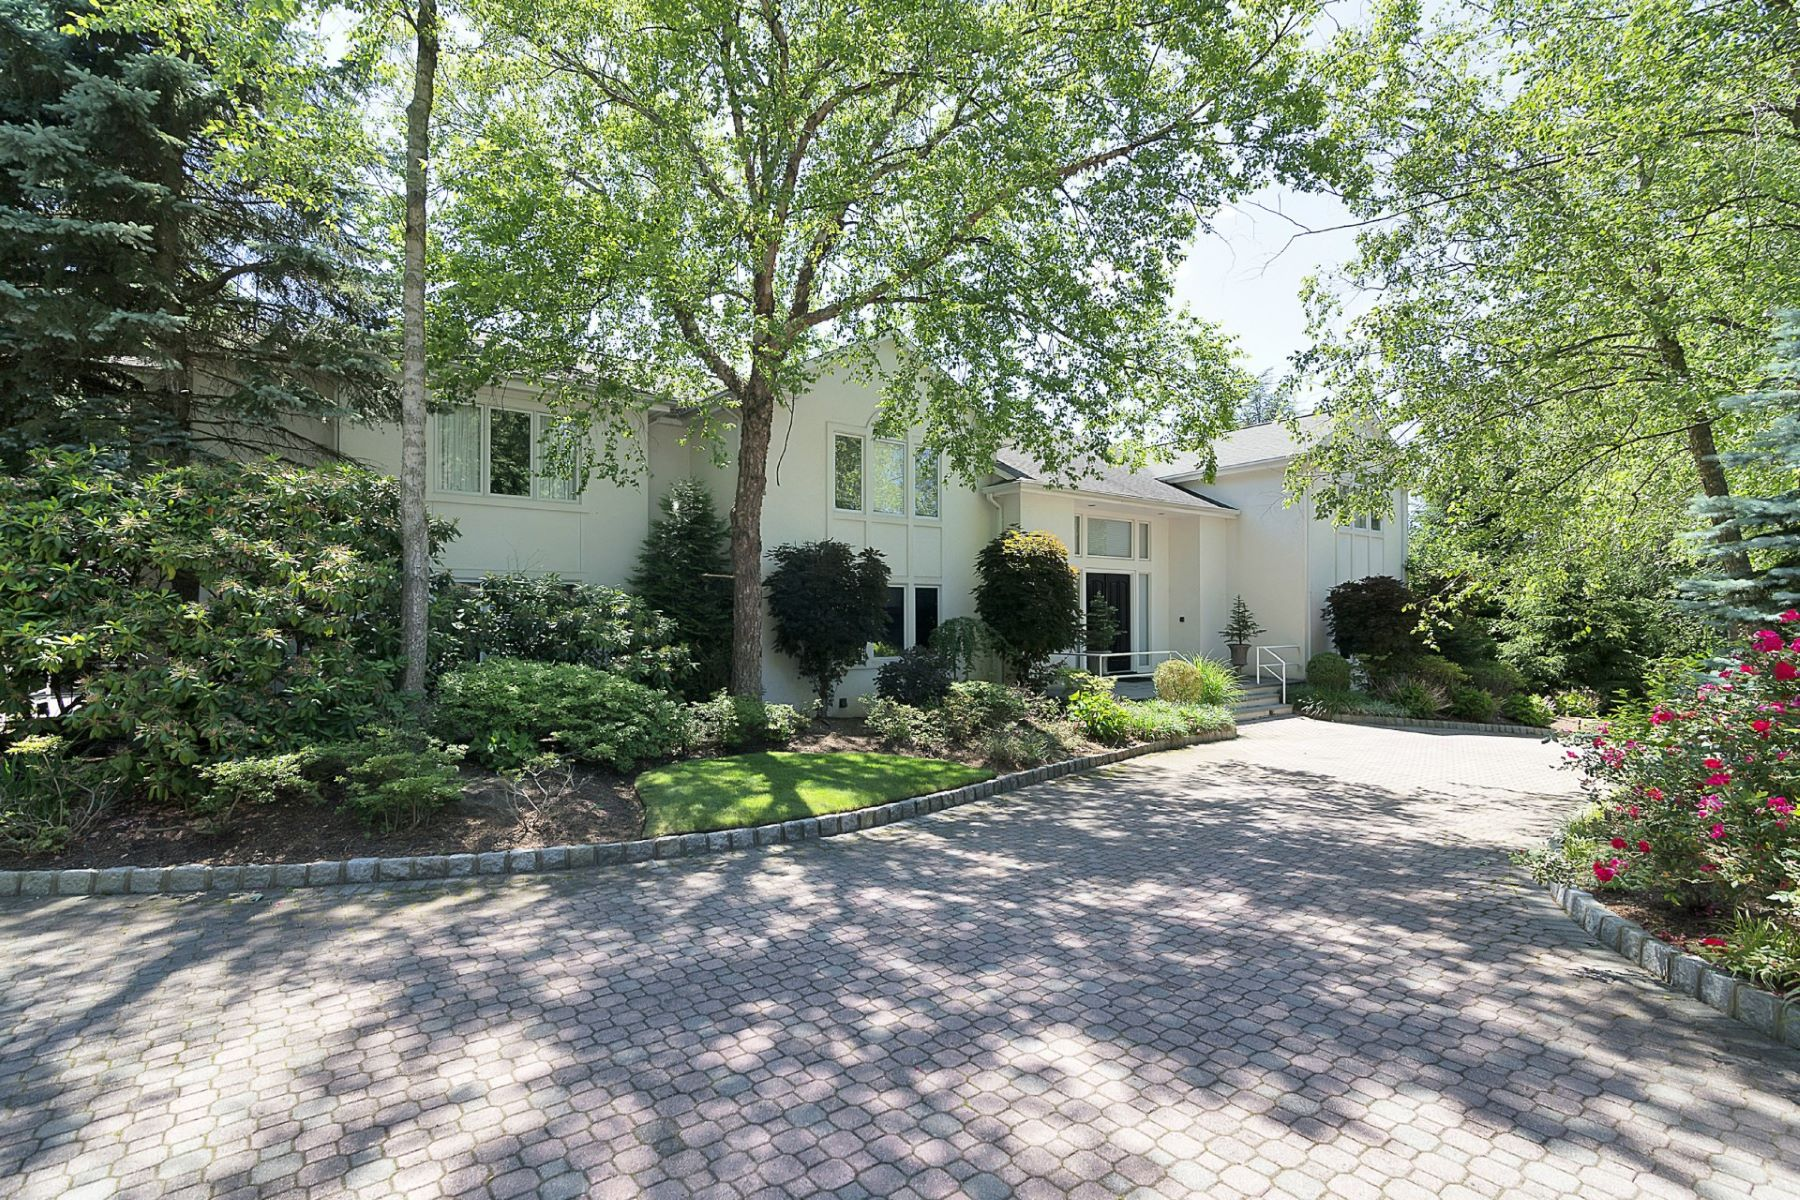 Single Family Home for Sale at Colonial Manor 40 Huyler Landing Rd Cresskill, New Jersey 07626 United States